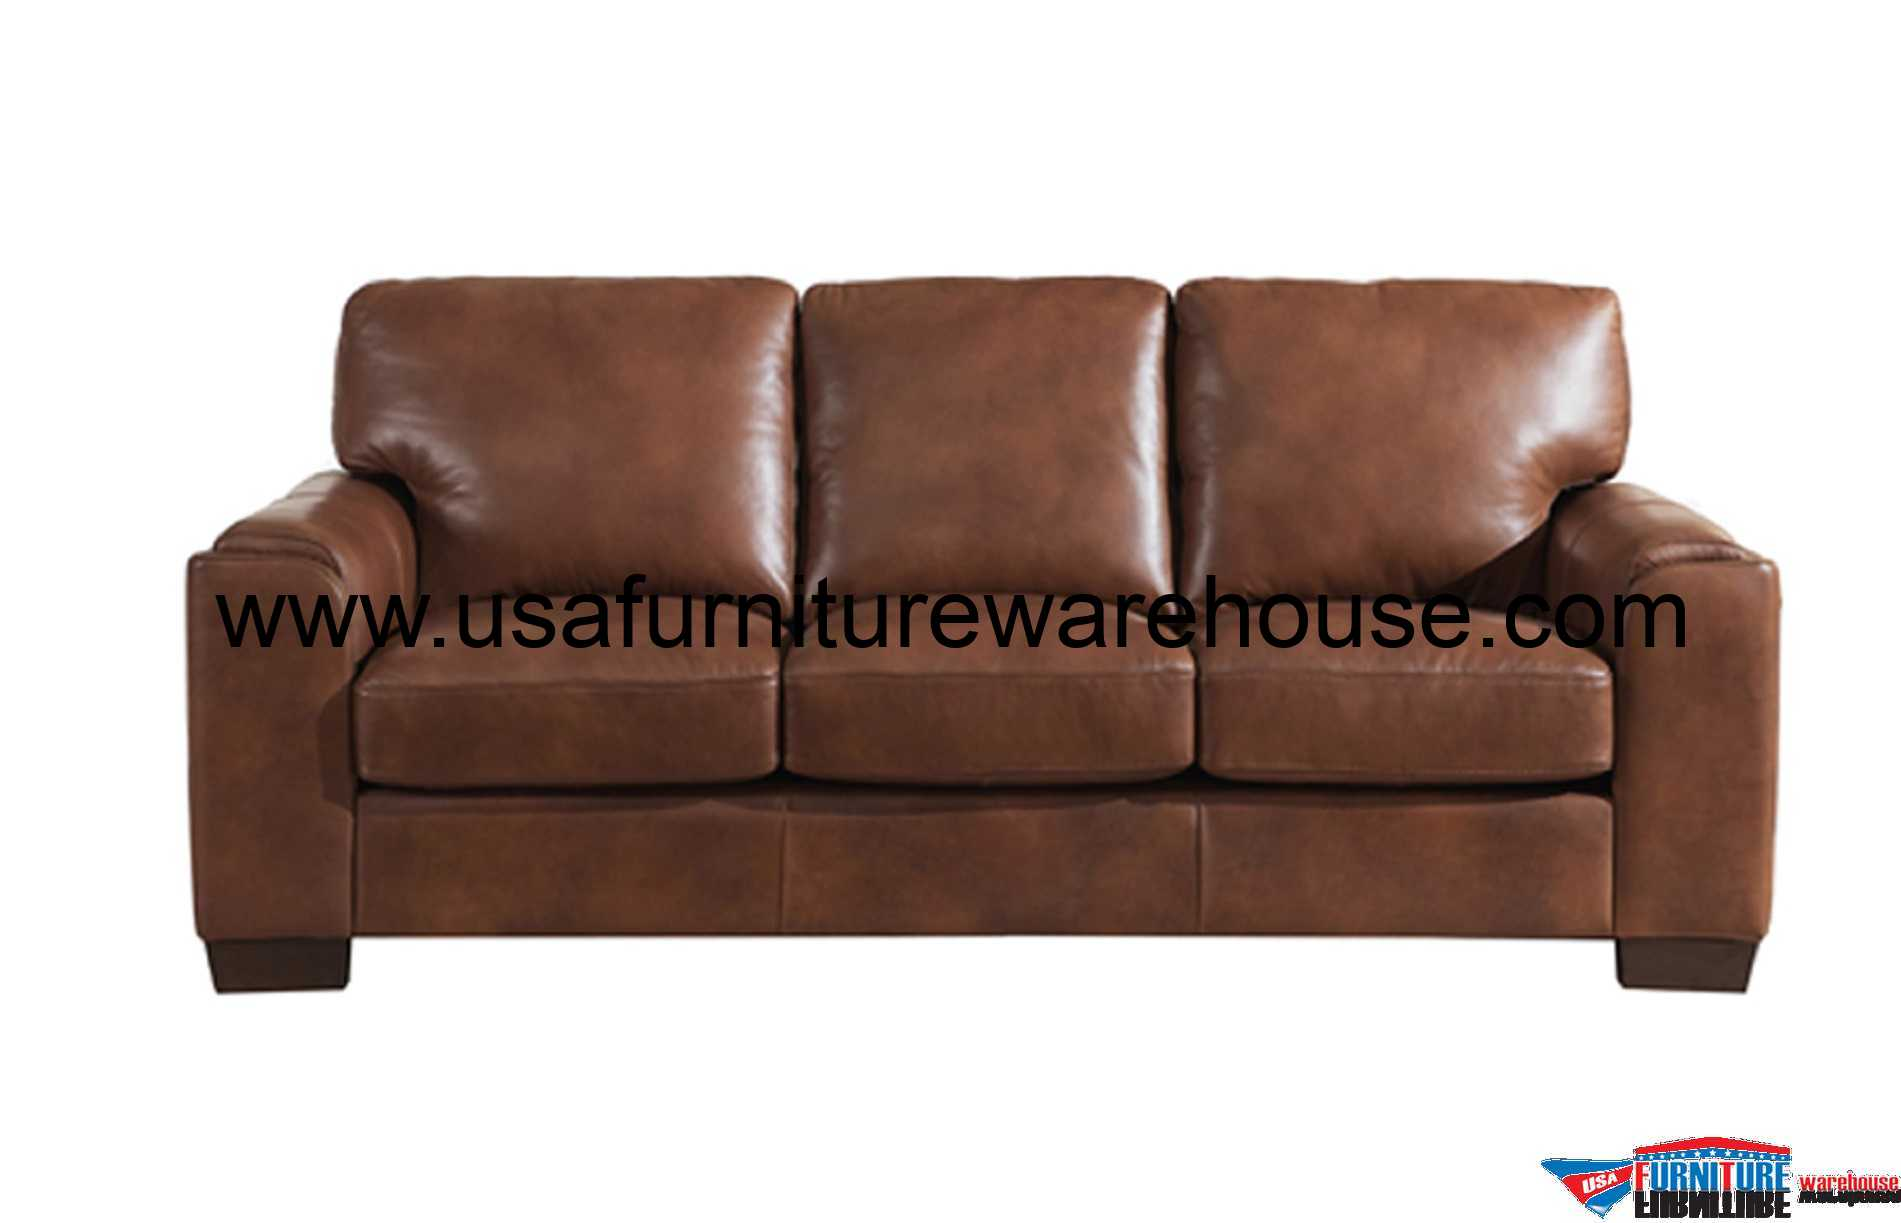 well full leather beige sofa set ottoman cabin sleeper acme suzanne fabric chair usa furniture warehouse